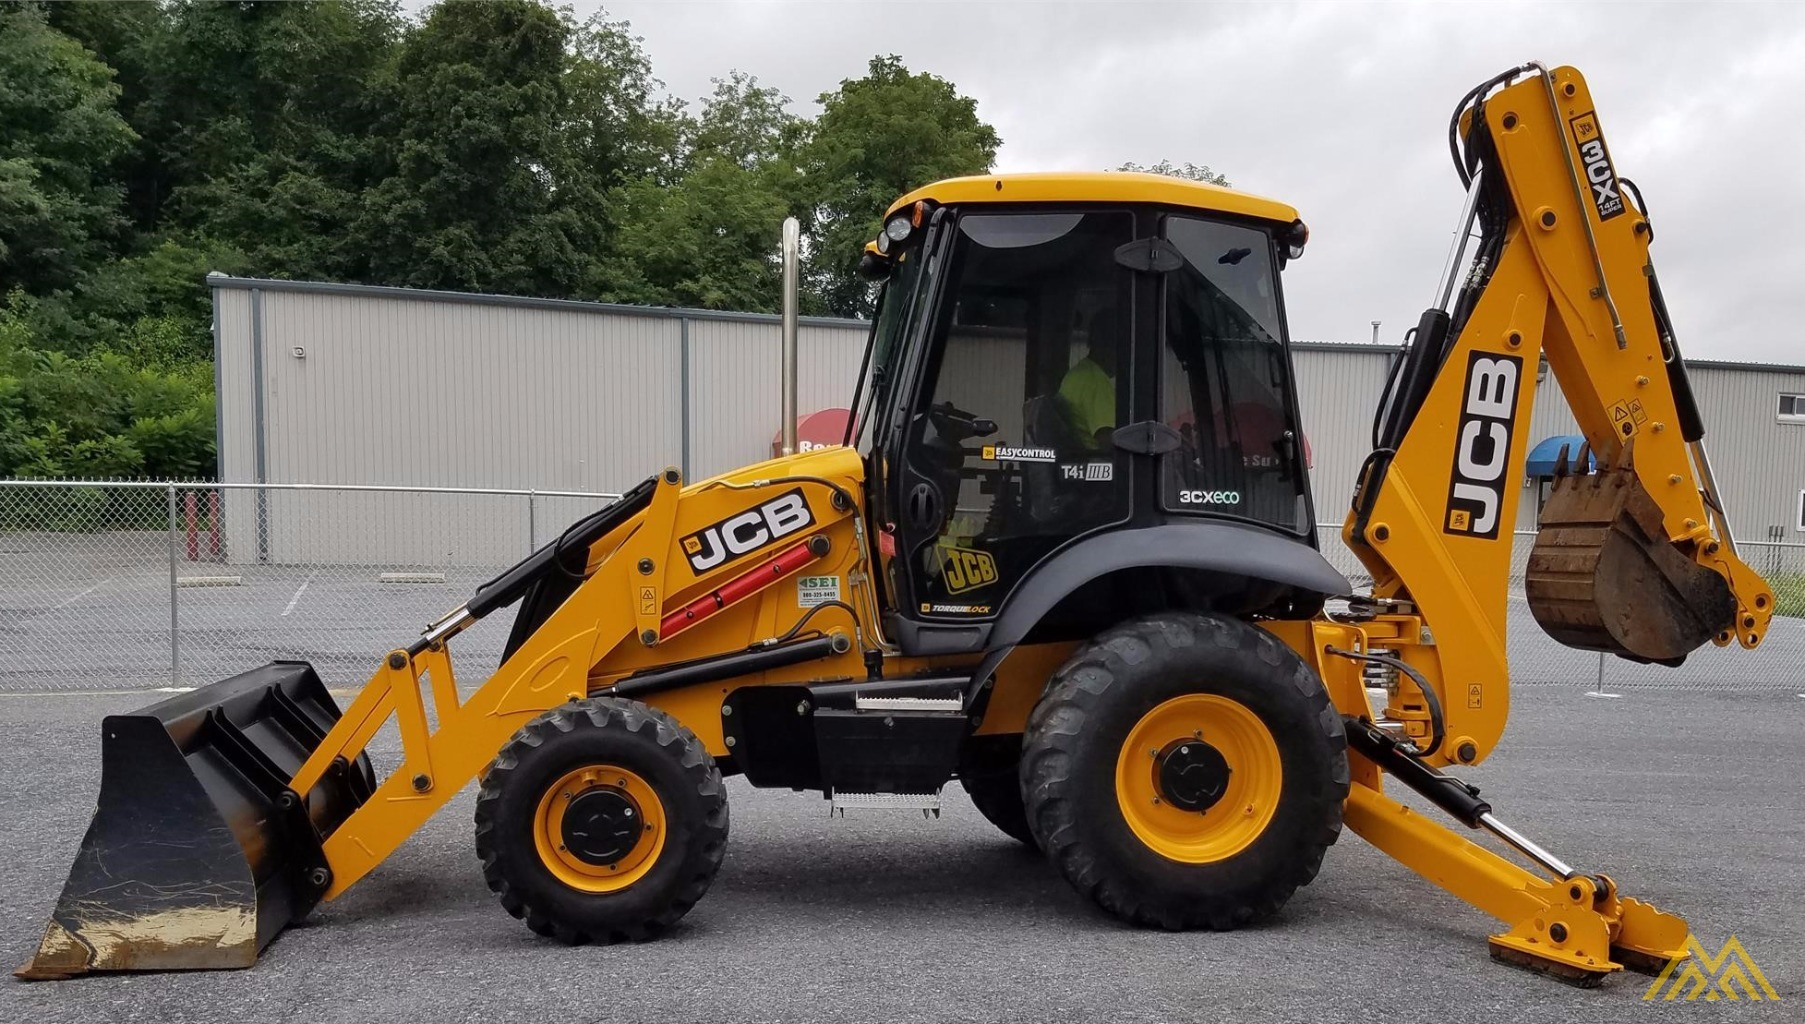 JCB 3CX14 Backhoe Loader 0